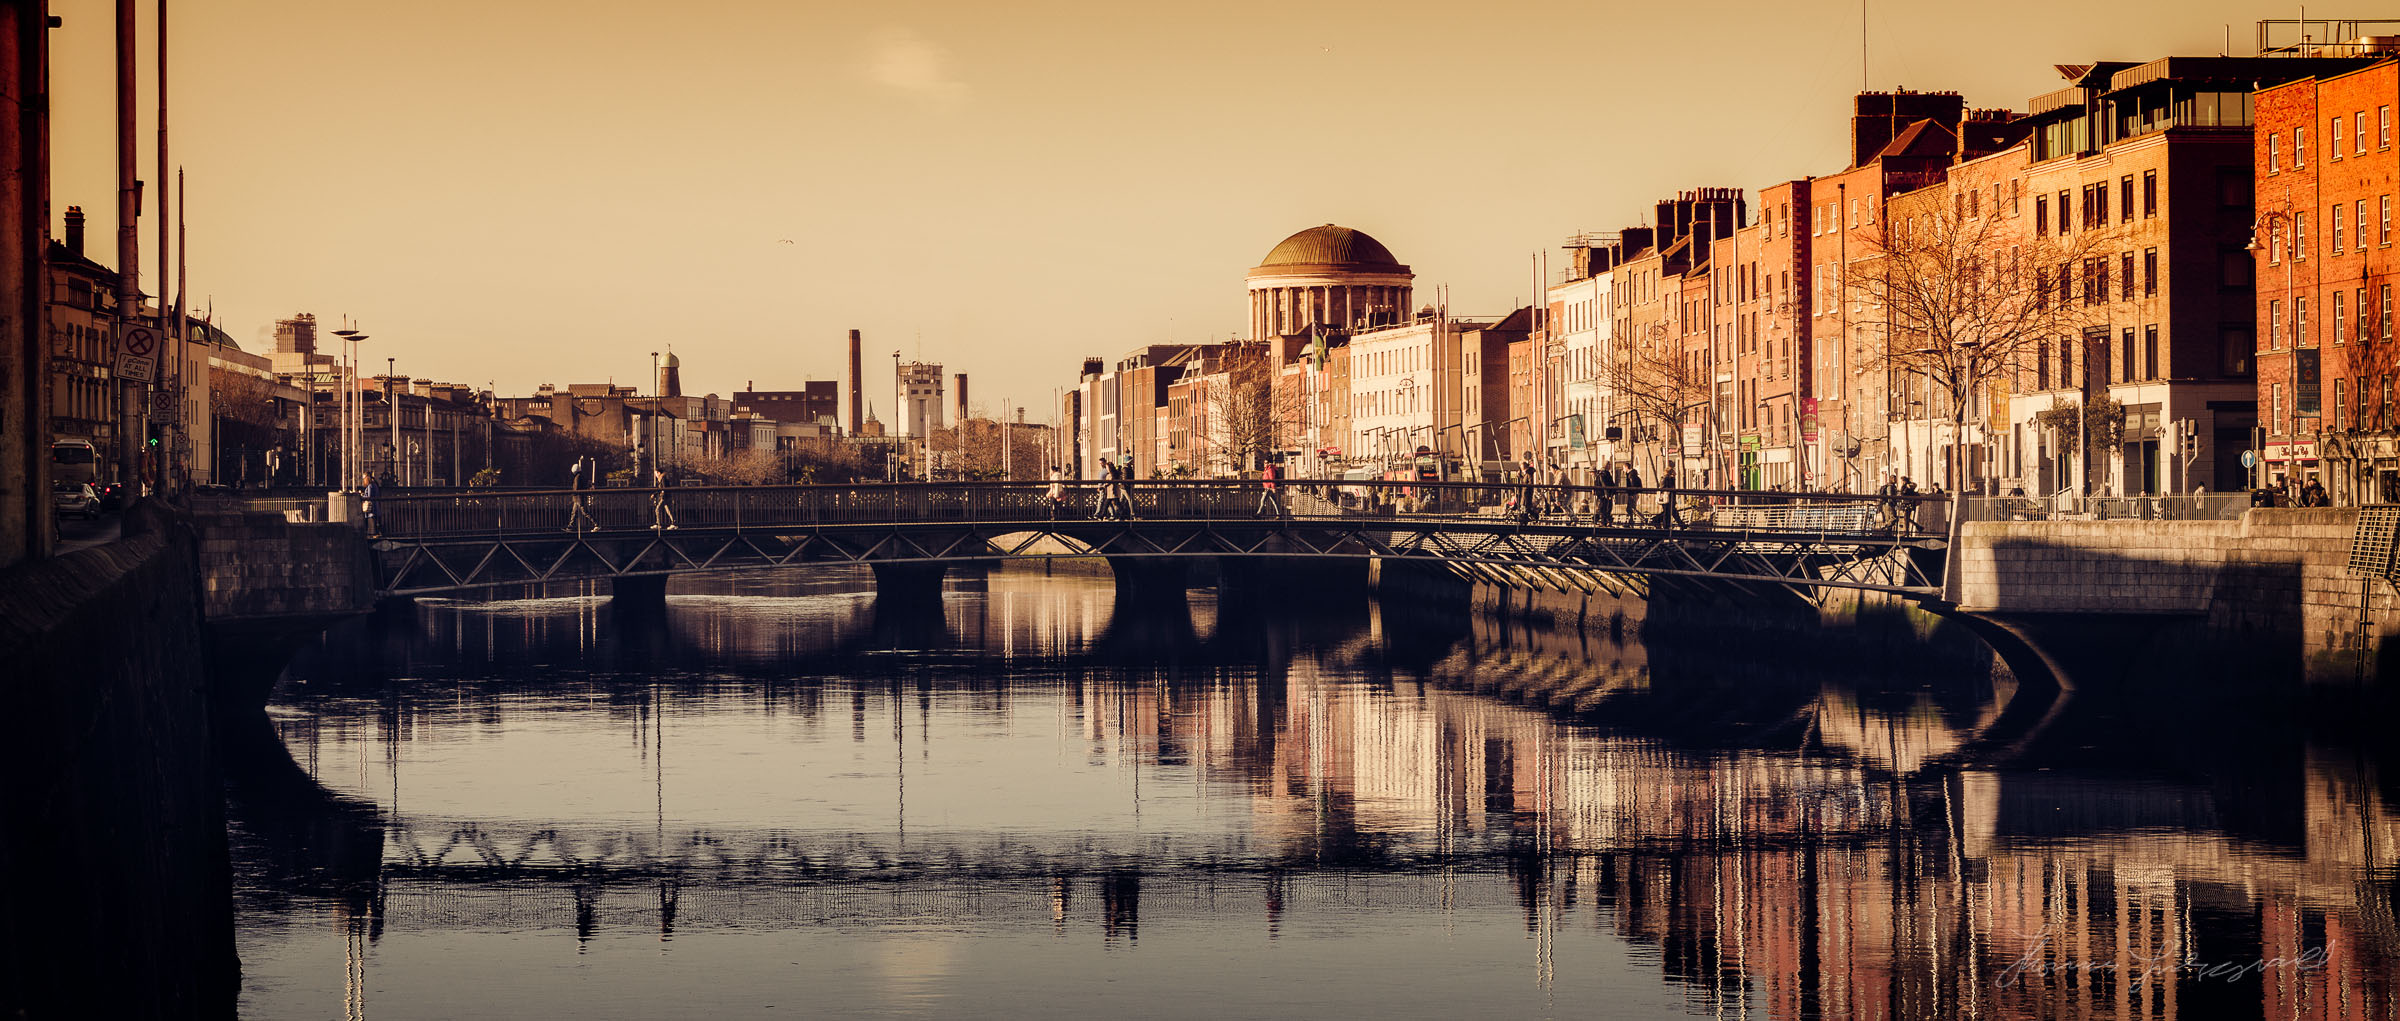 The Low Sun over the gentle waters of the Liffey